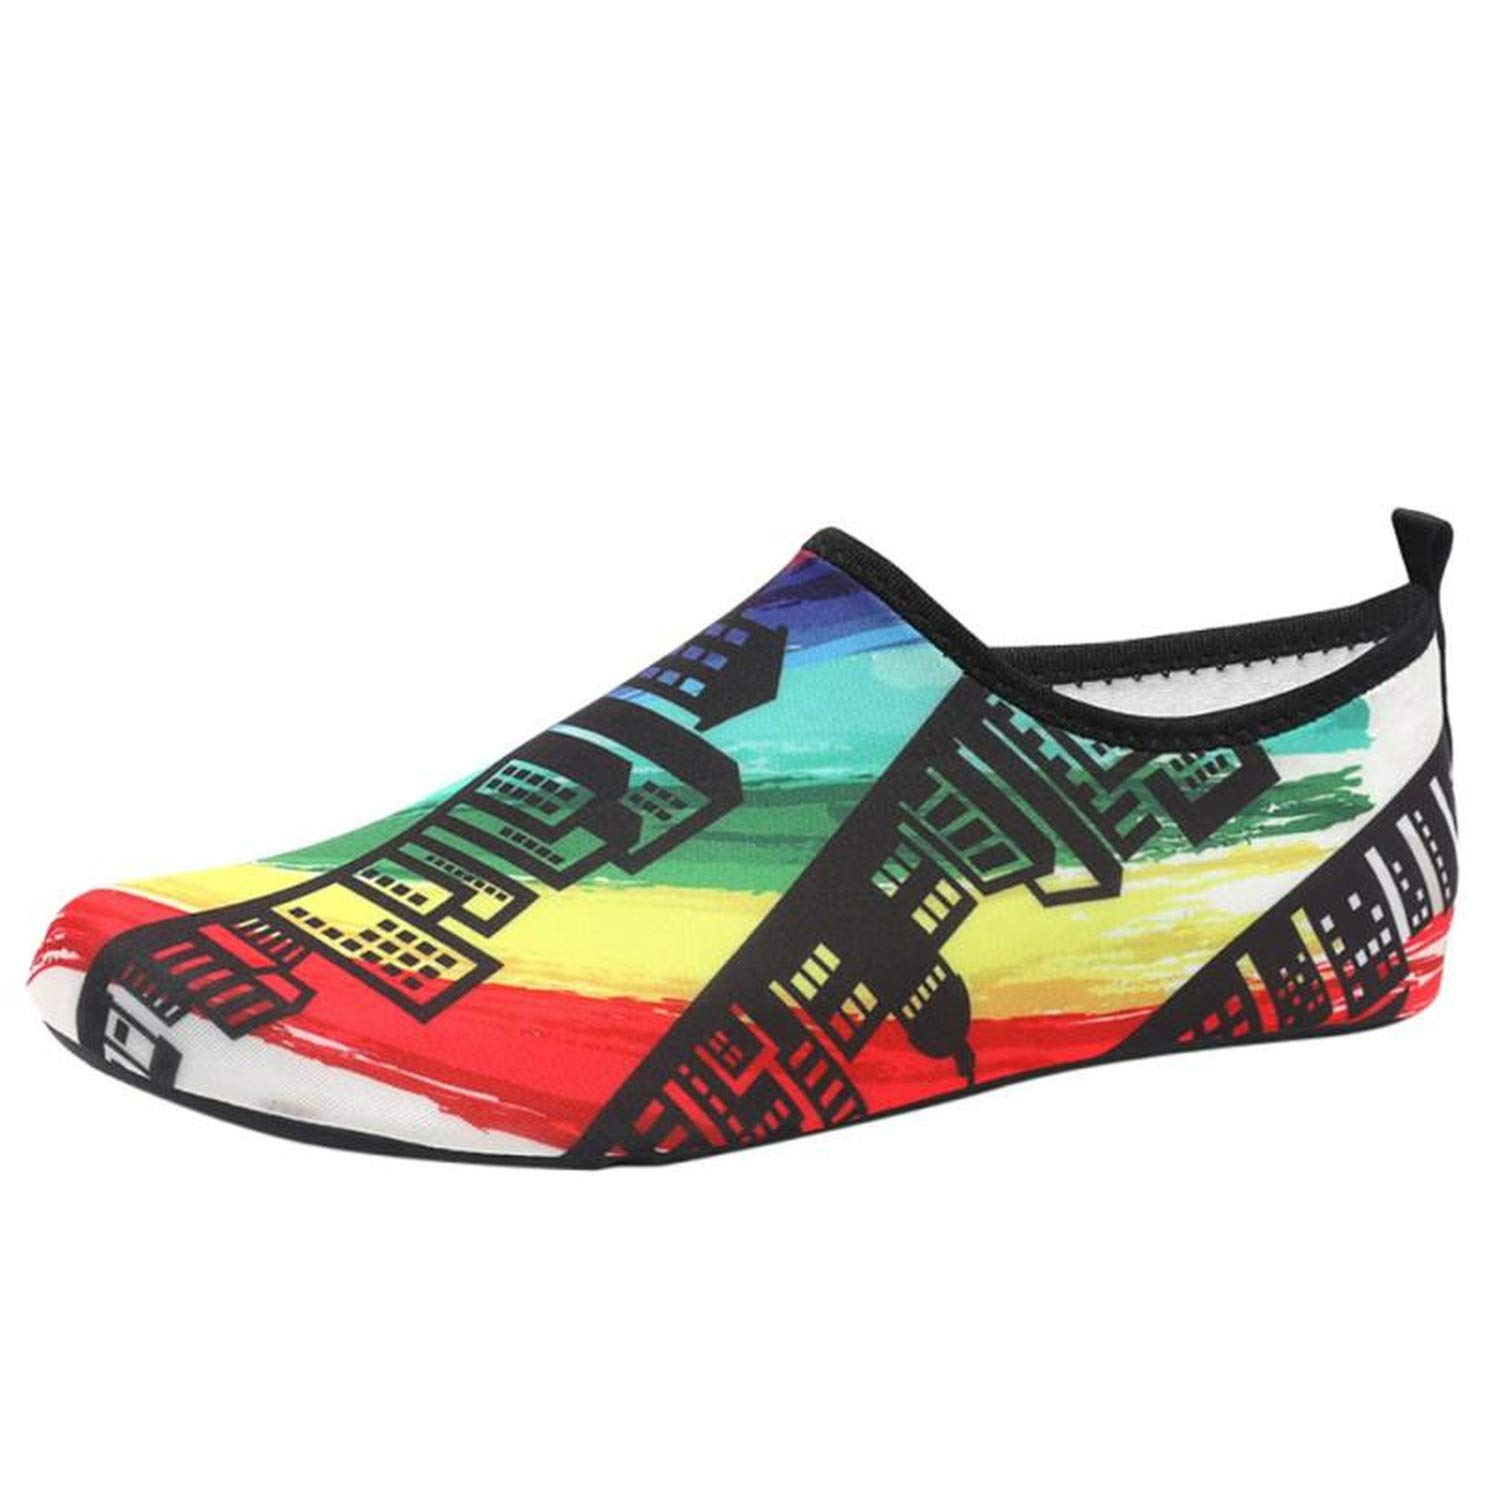 cola-site Outdoor Sneaker for Swimming Pool Fishing Water Diving Barefoot,Multicolor,10